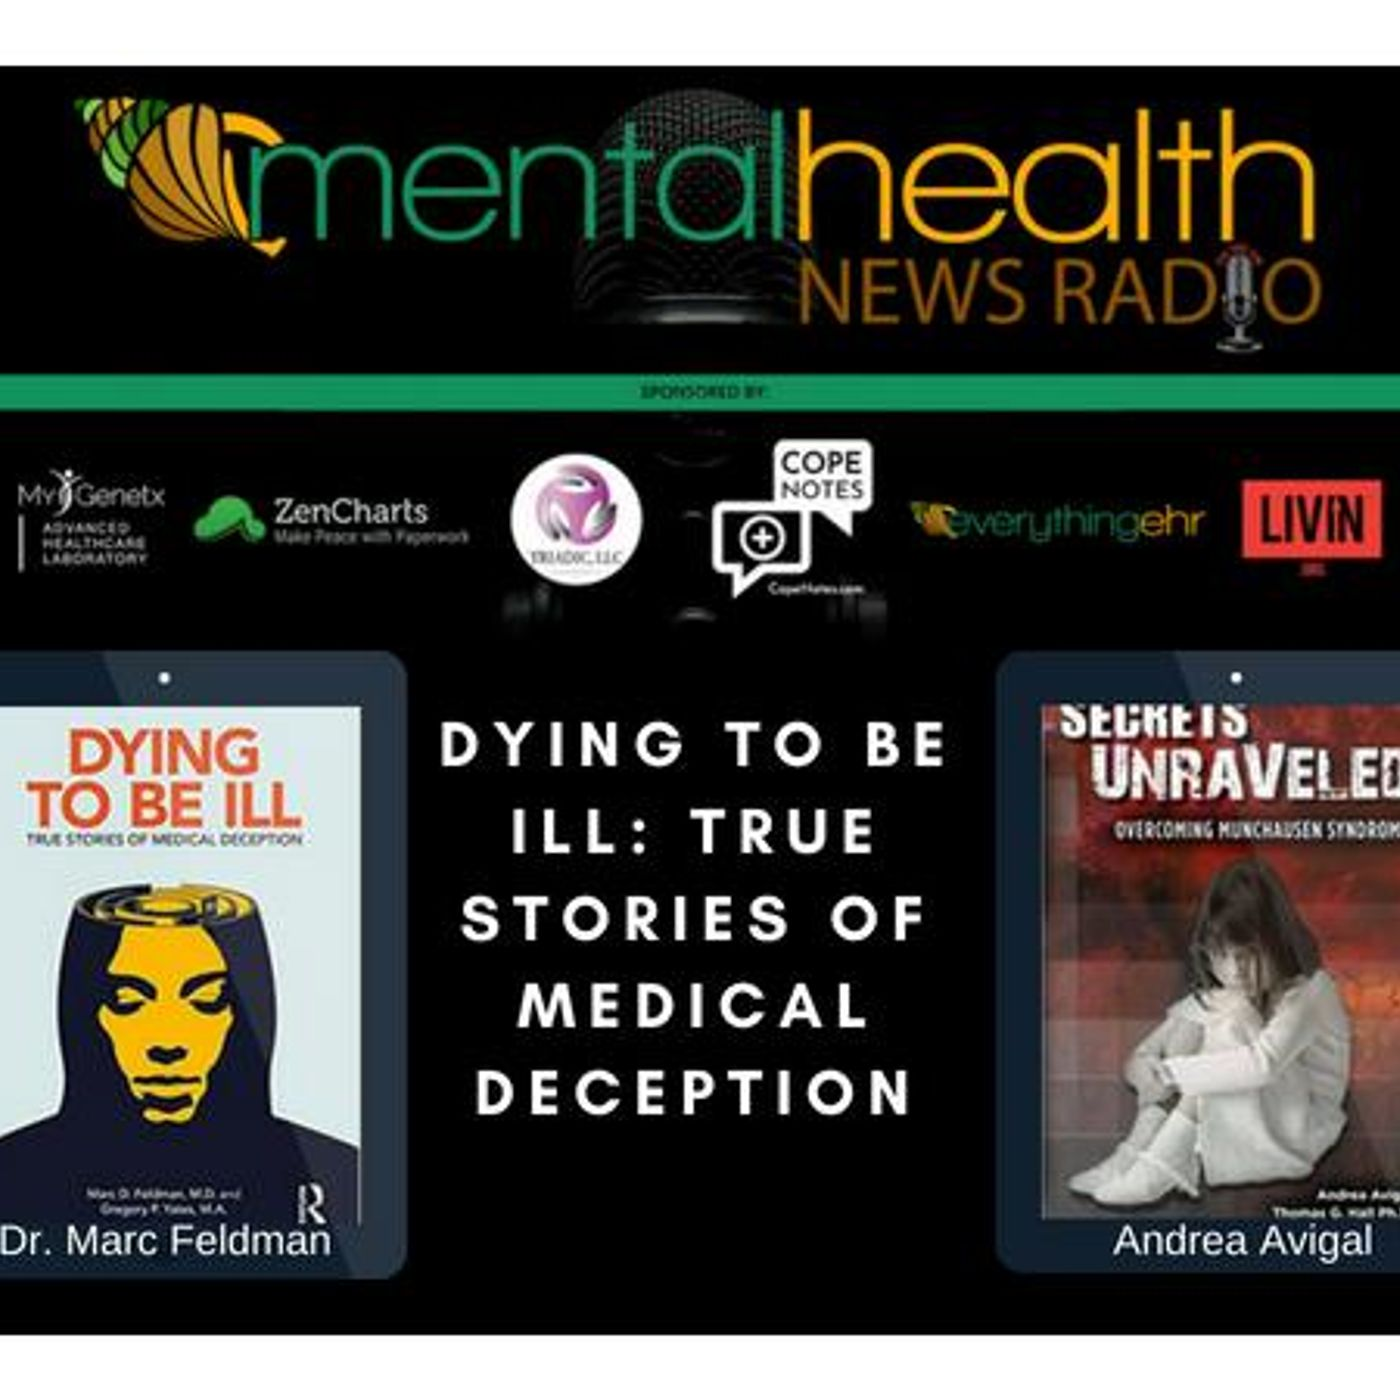 Mental Health News Radio - Dying To Be Ill: True Stories of Medical Deception with Dr. Marc Feldman